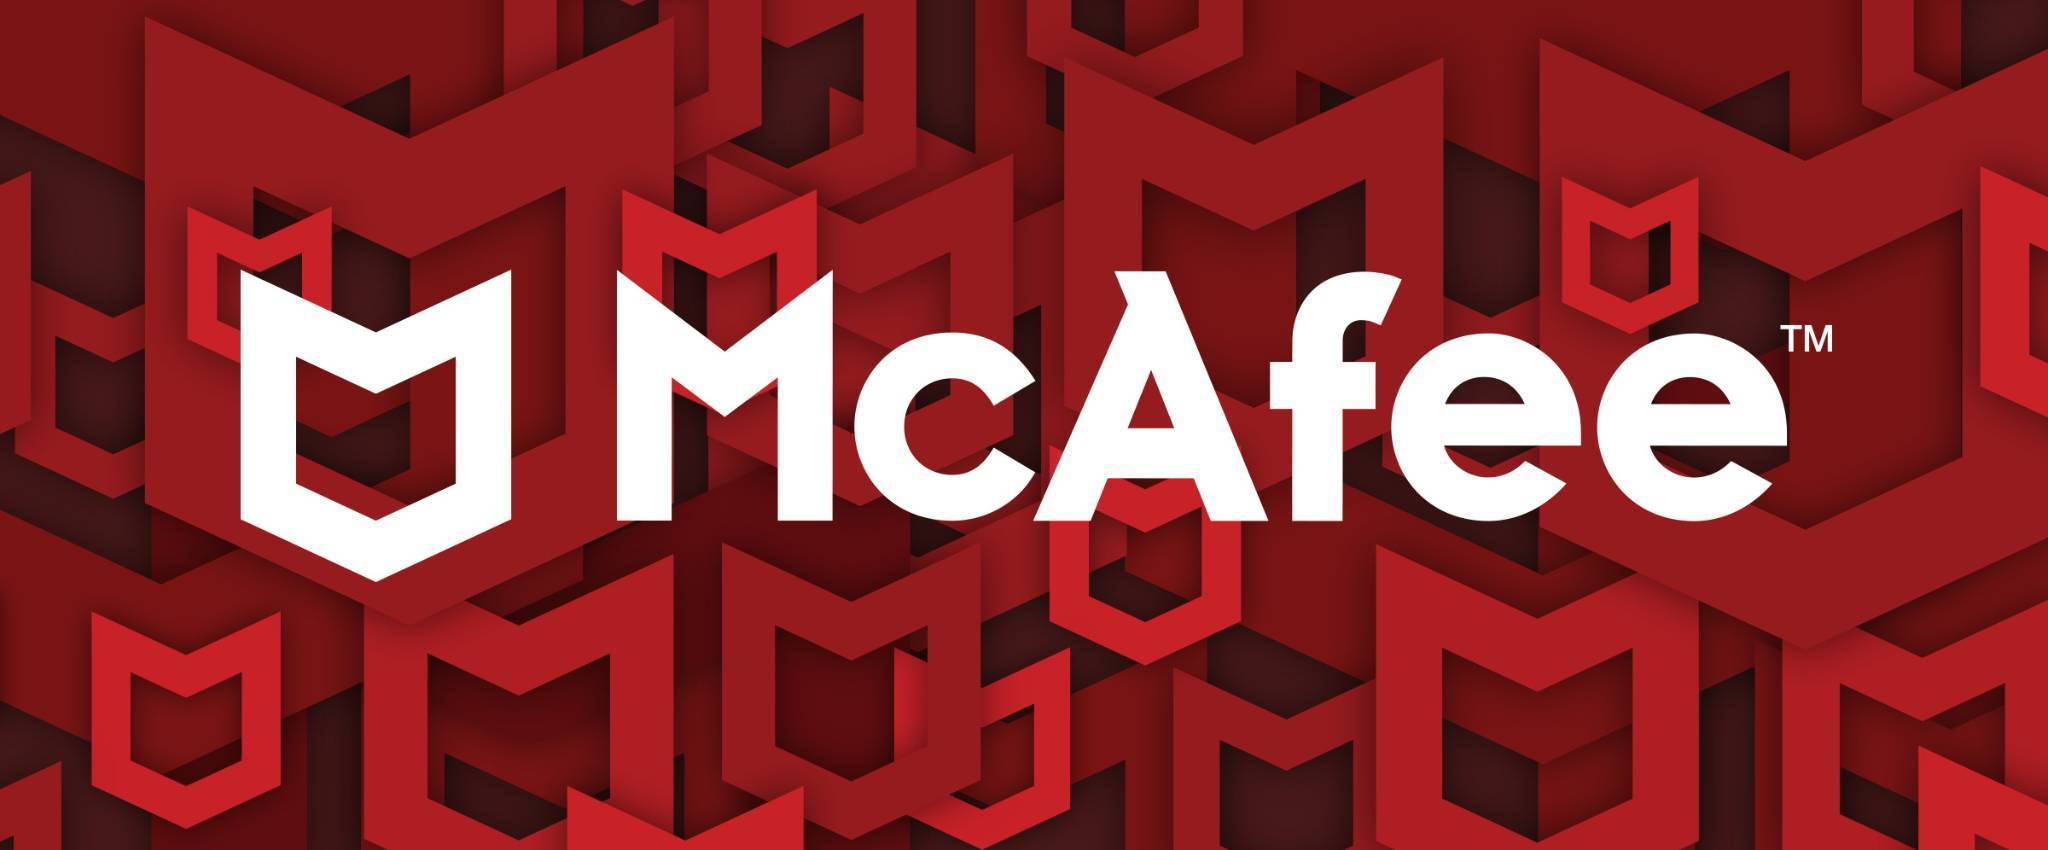 banner mcafee